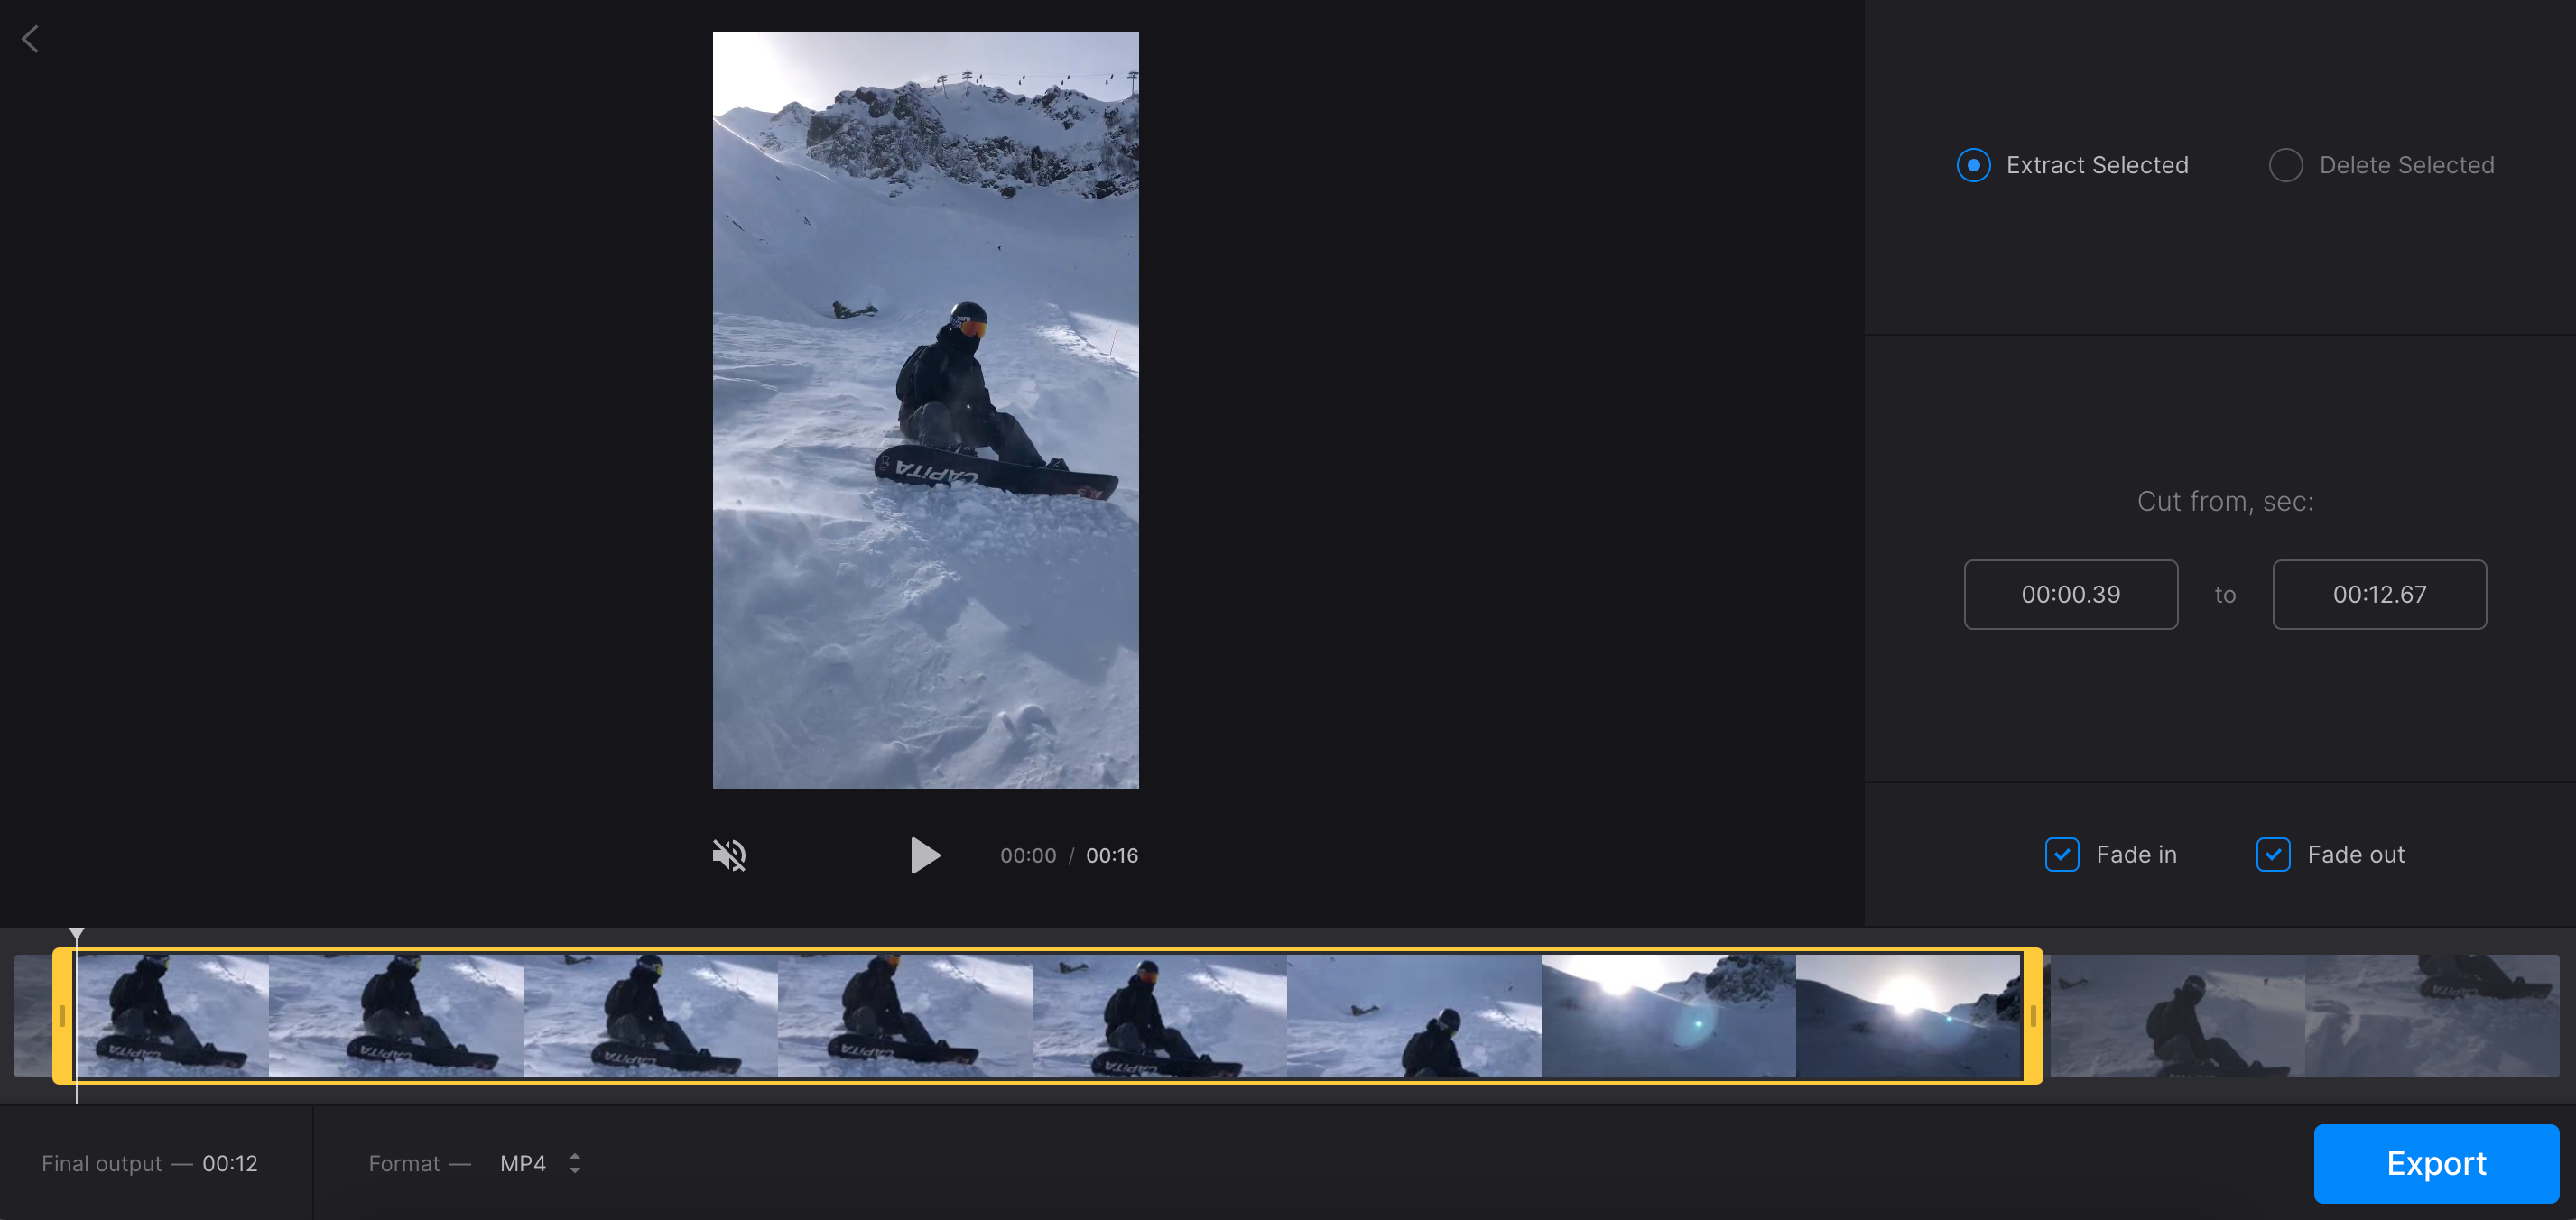 Adjust fade effect for video